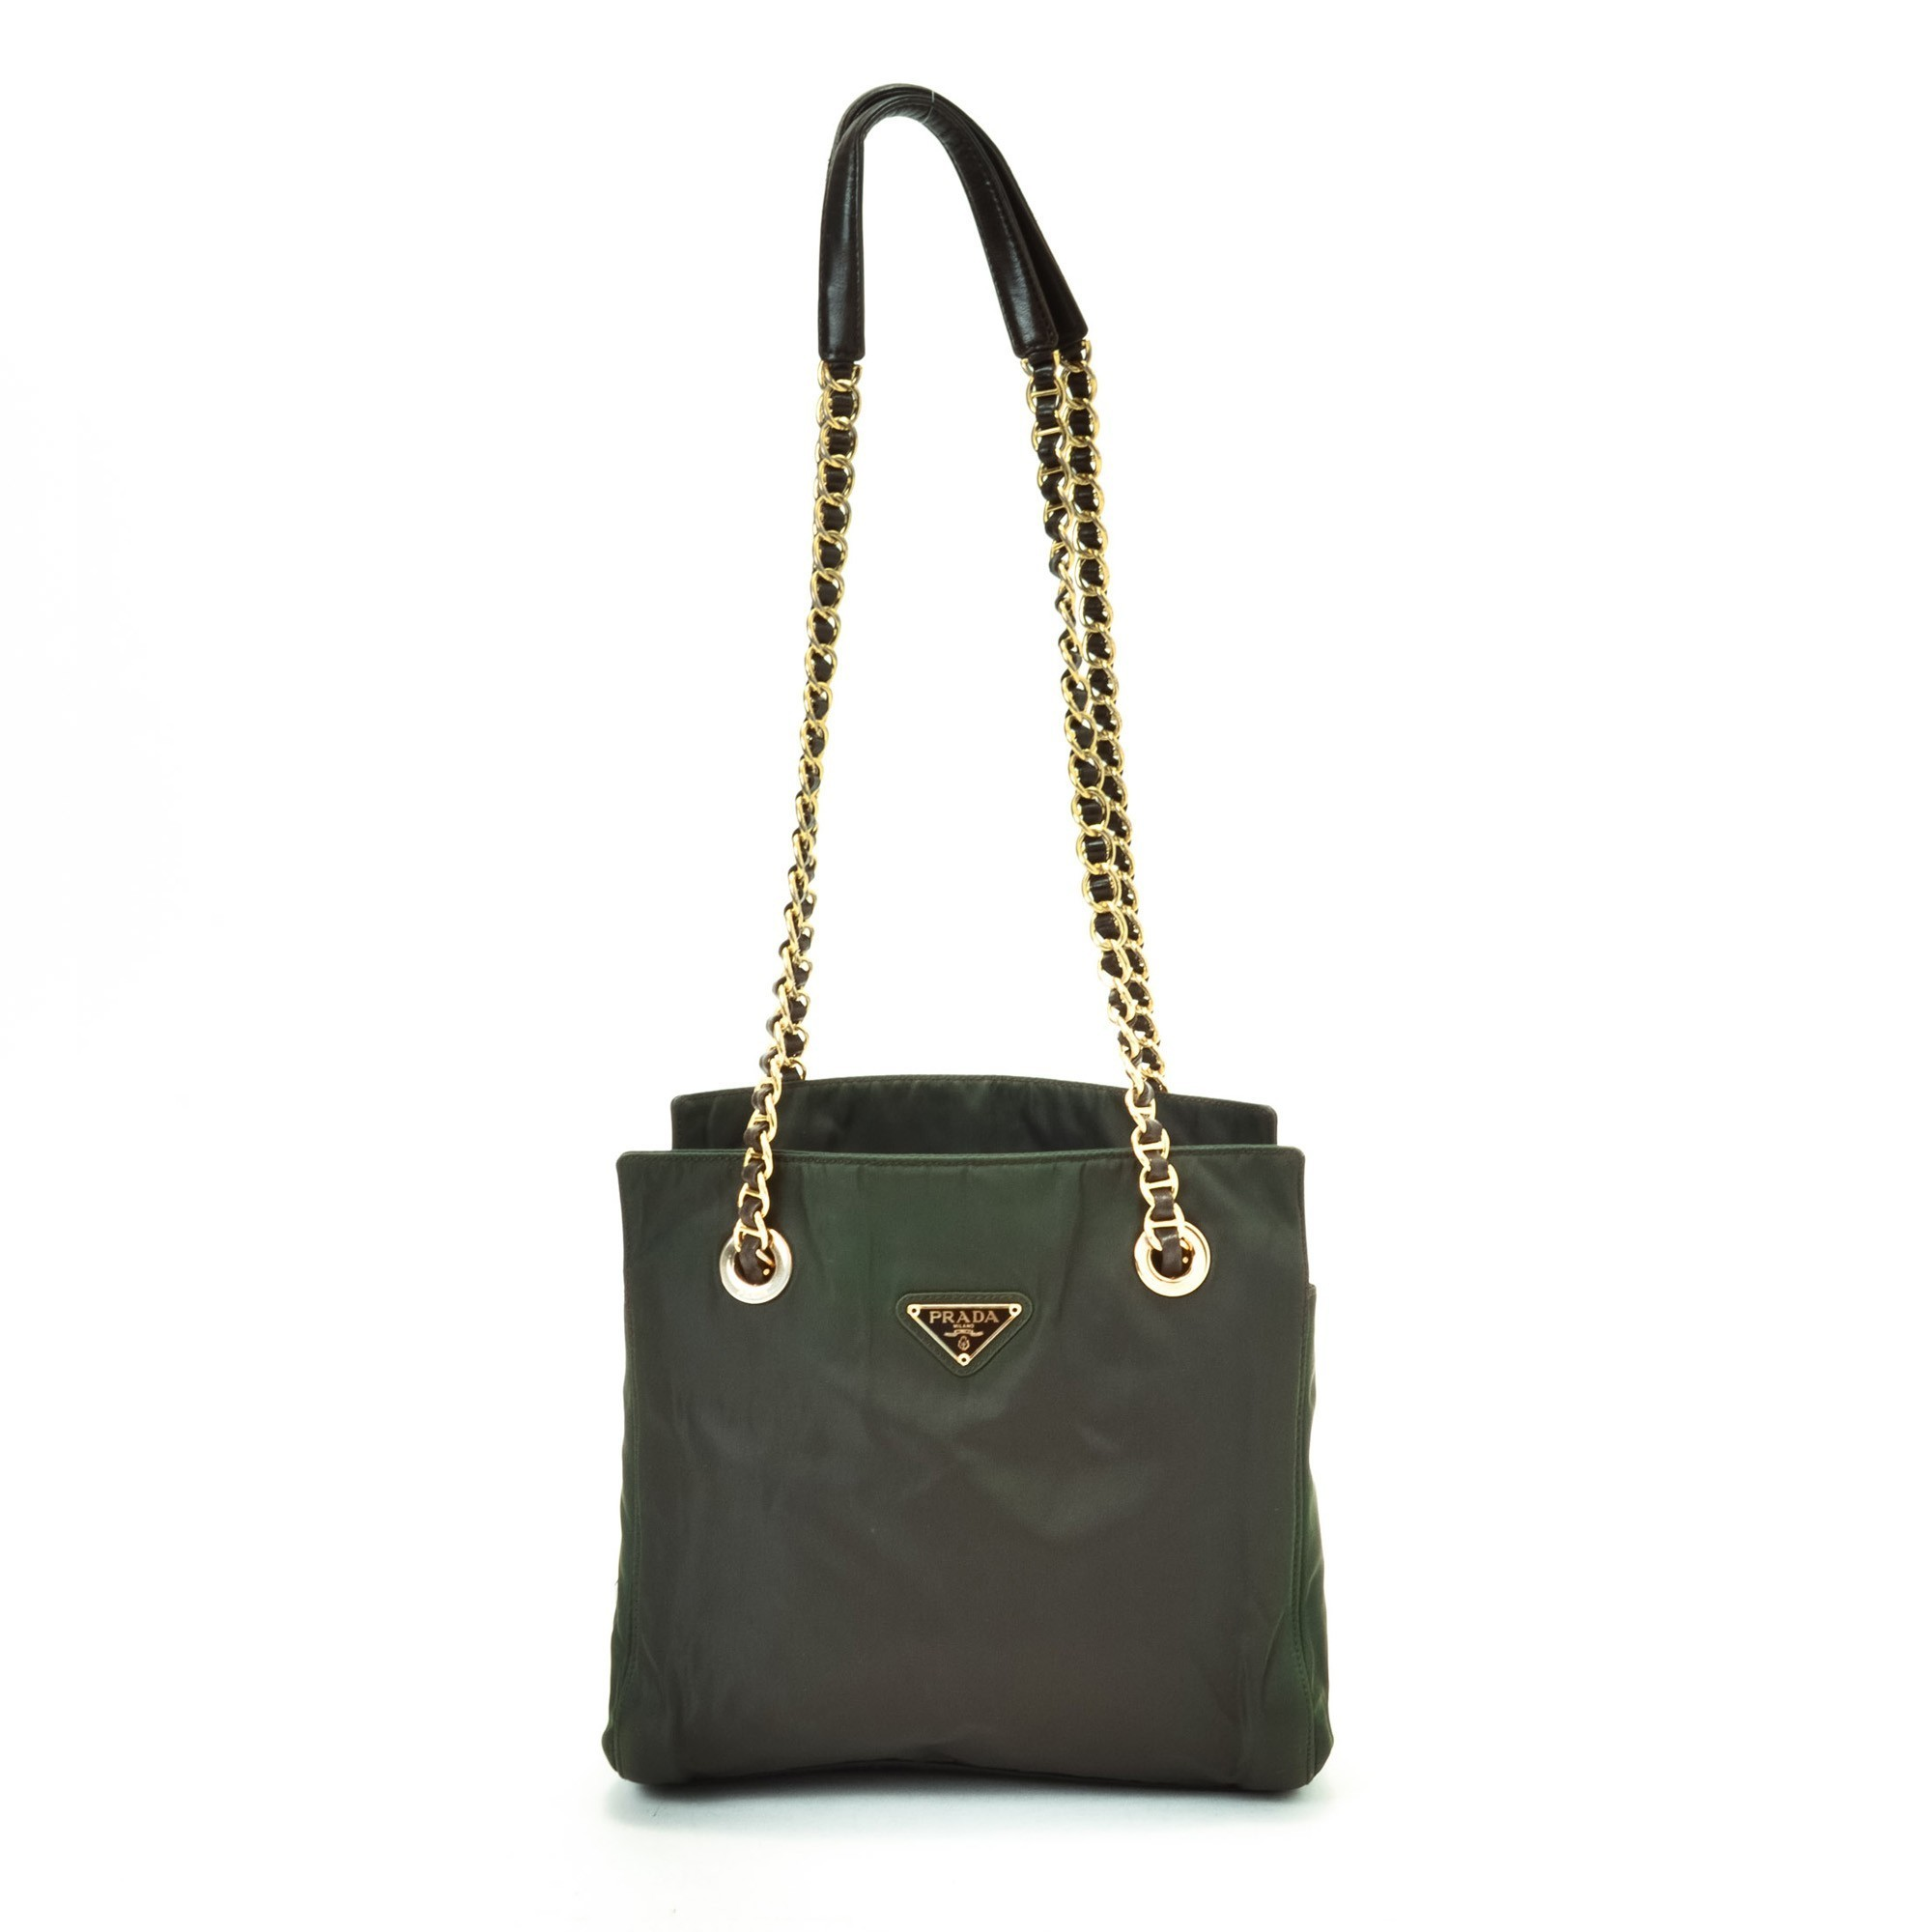 Color Prada Nylon In Bags 44